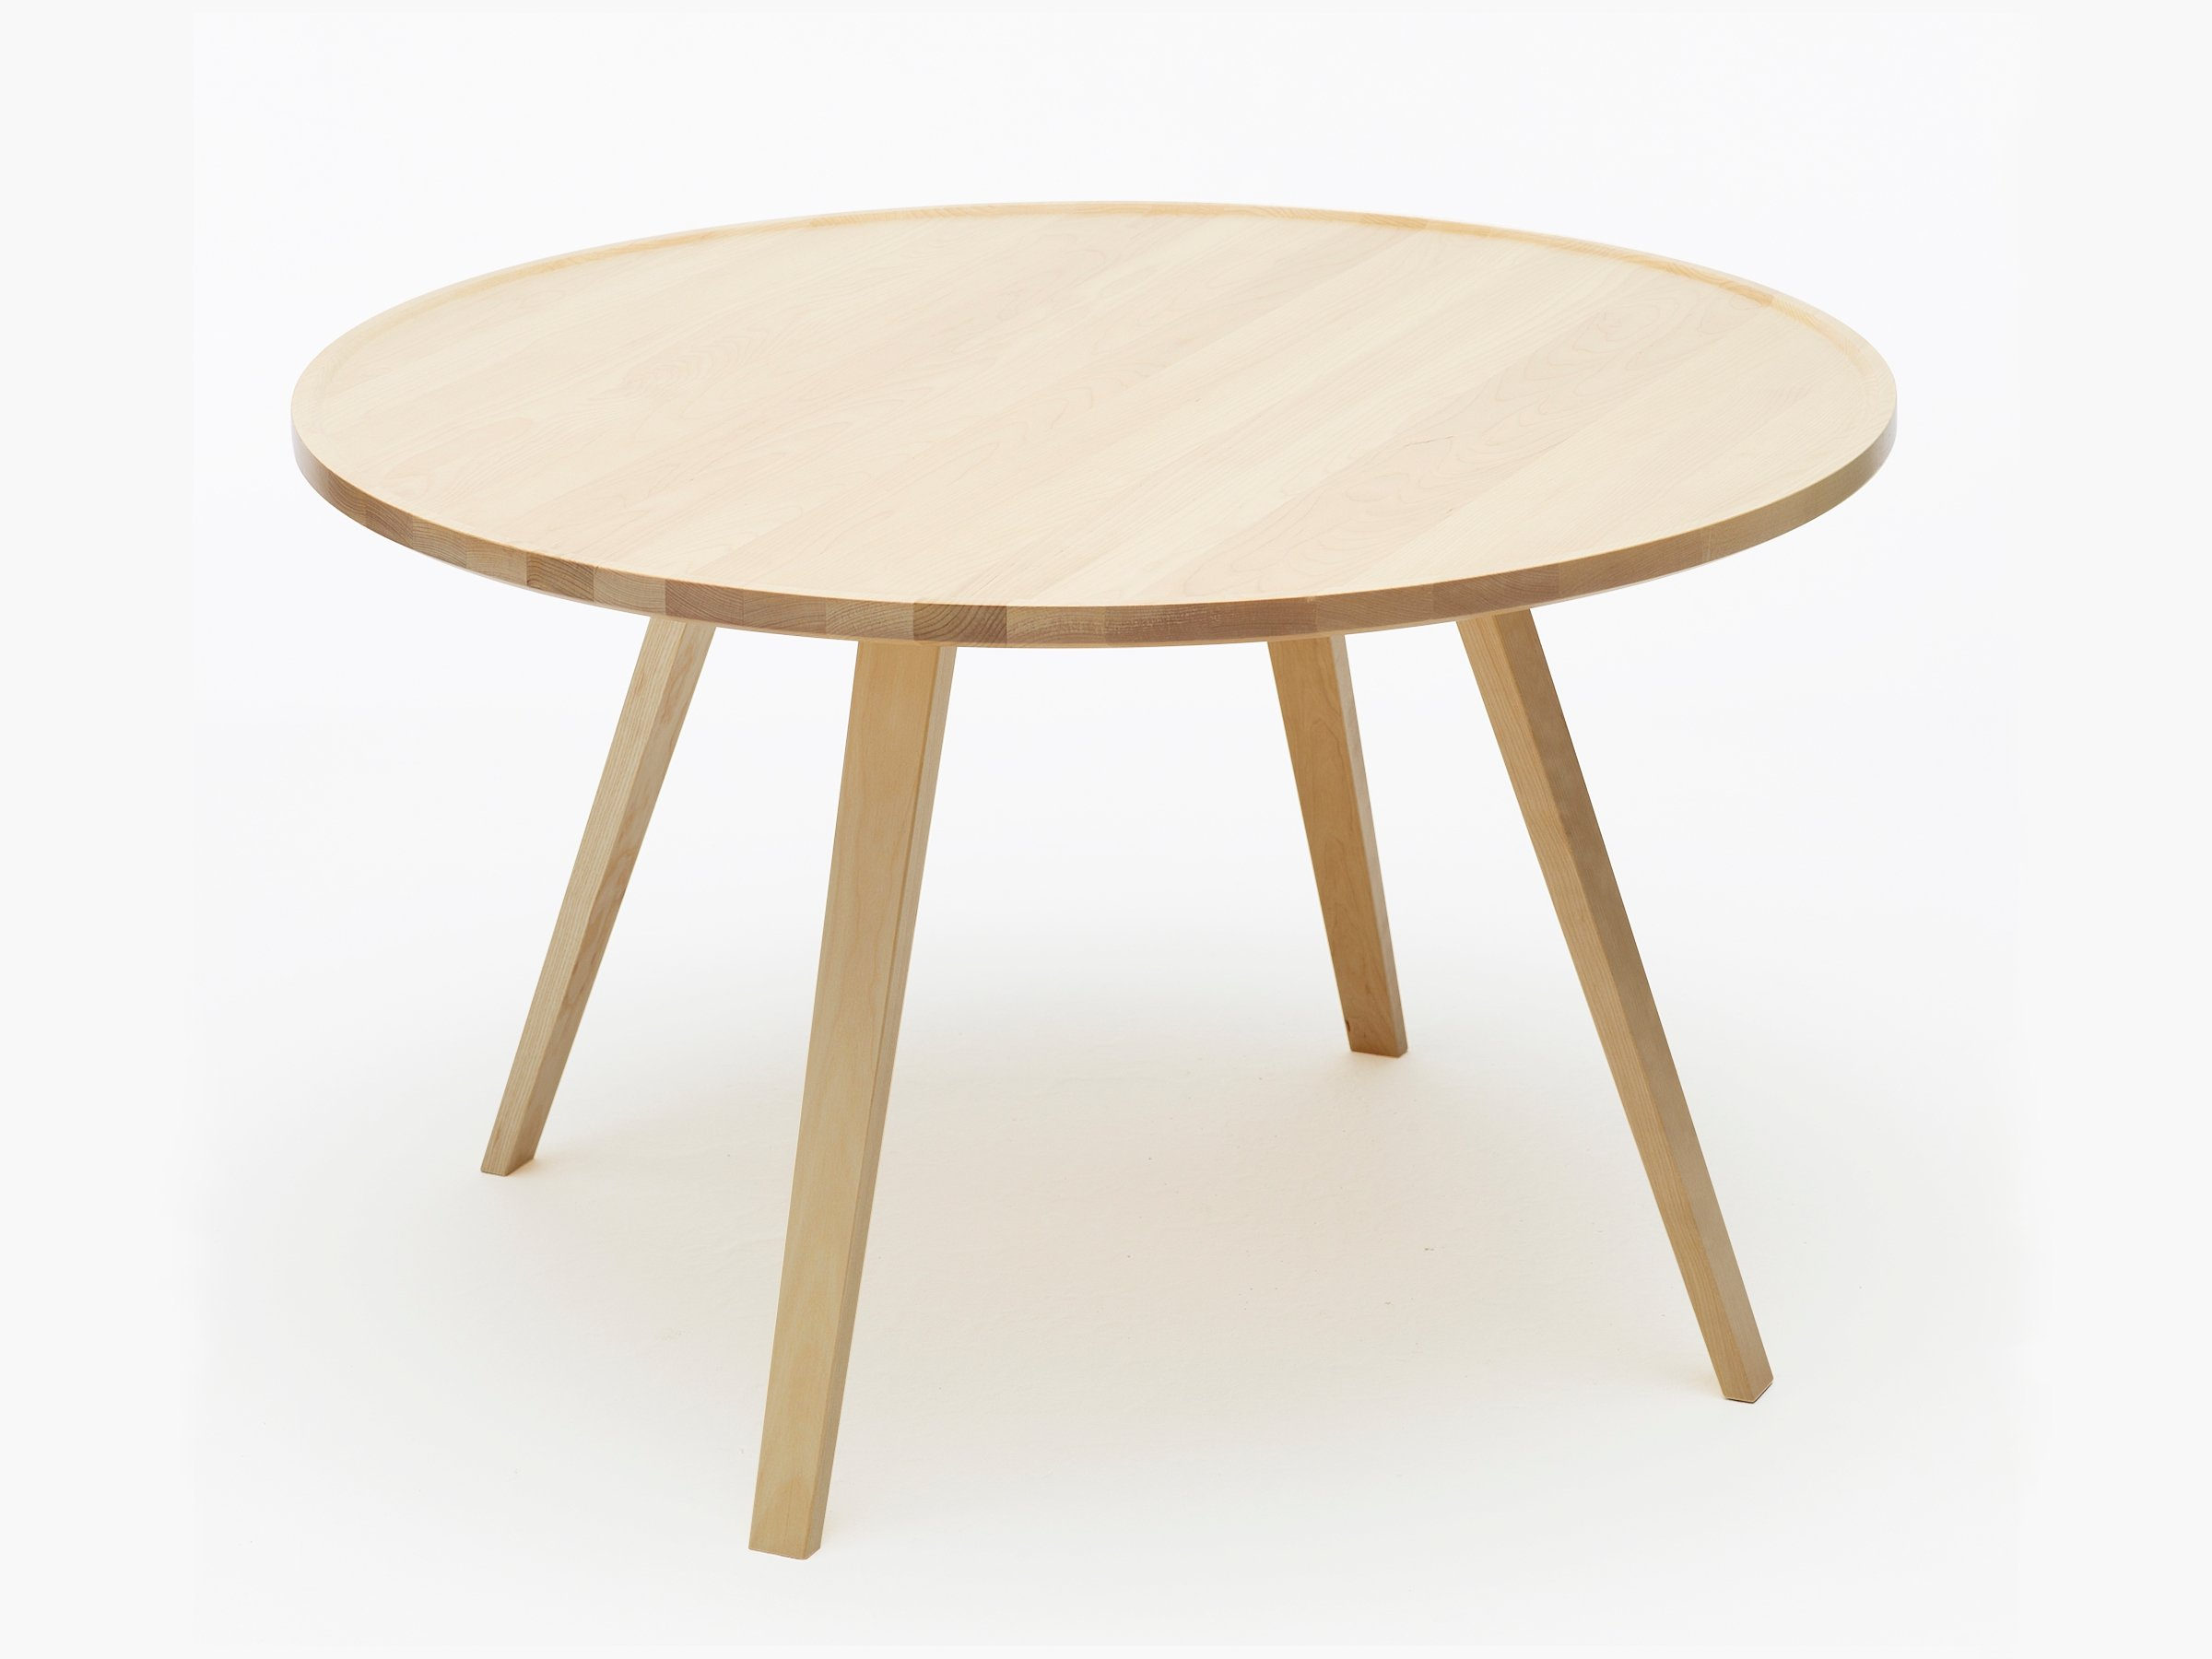 Mill table basse ronde by karl andersson s ner design - Table ronde en bois ...